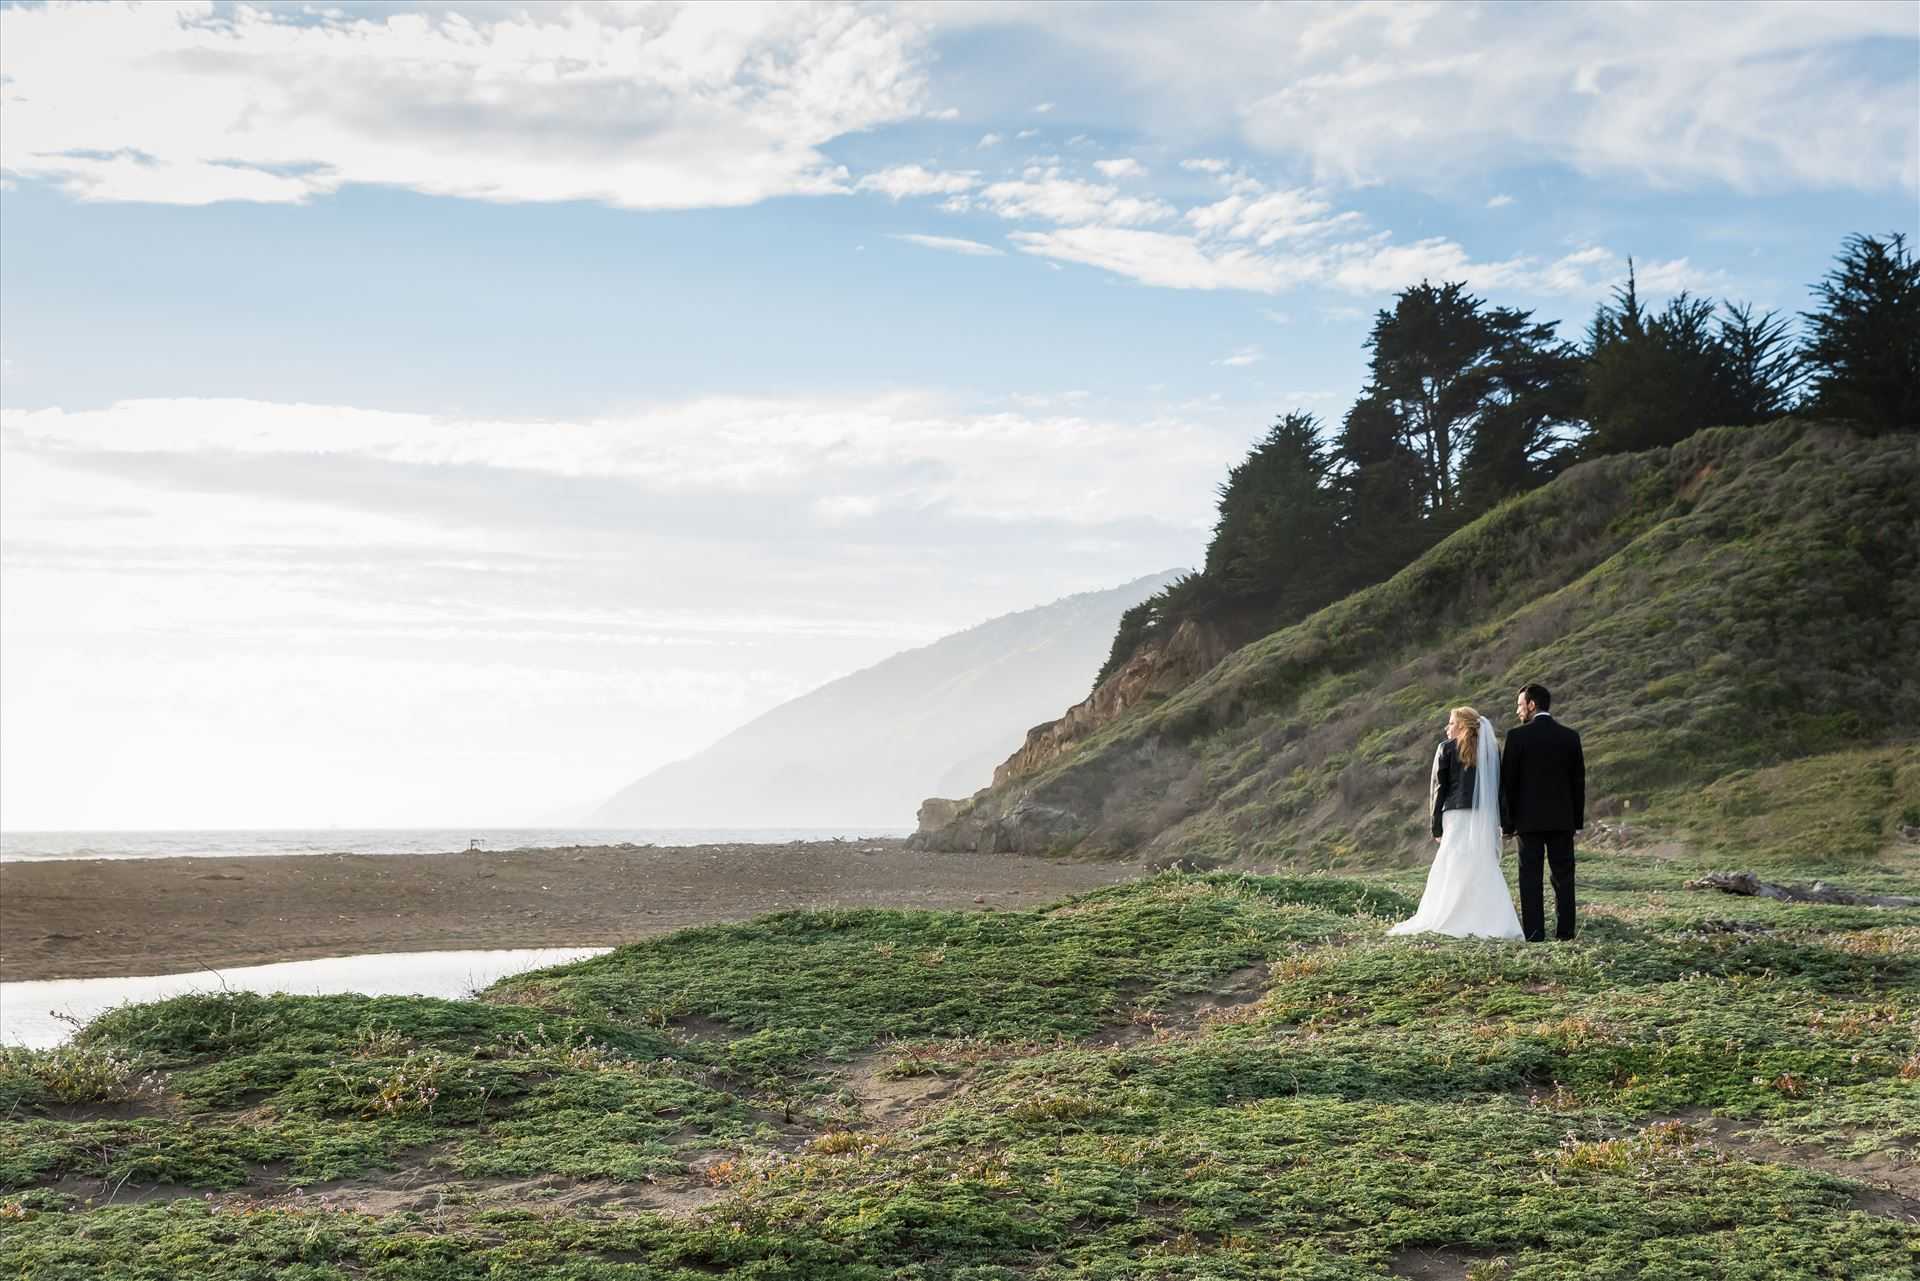 Adele and Jason 31 - Ragged Point Inn Wedding Elopement photography by Mirror's Edge Photography in San Simeon Cambria California. Bride and Groom at Ragged Point beach. Big Sur Wedding Photography by Sarah Williams